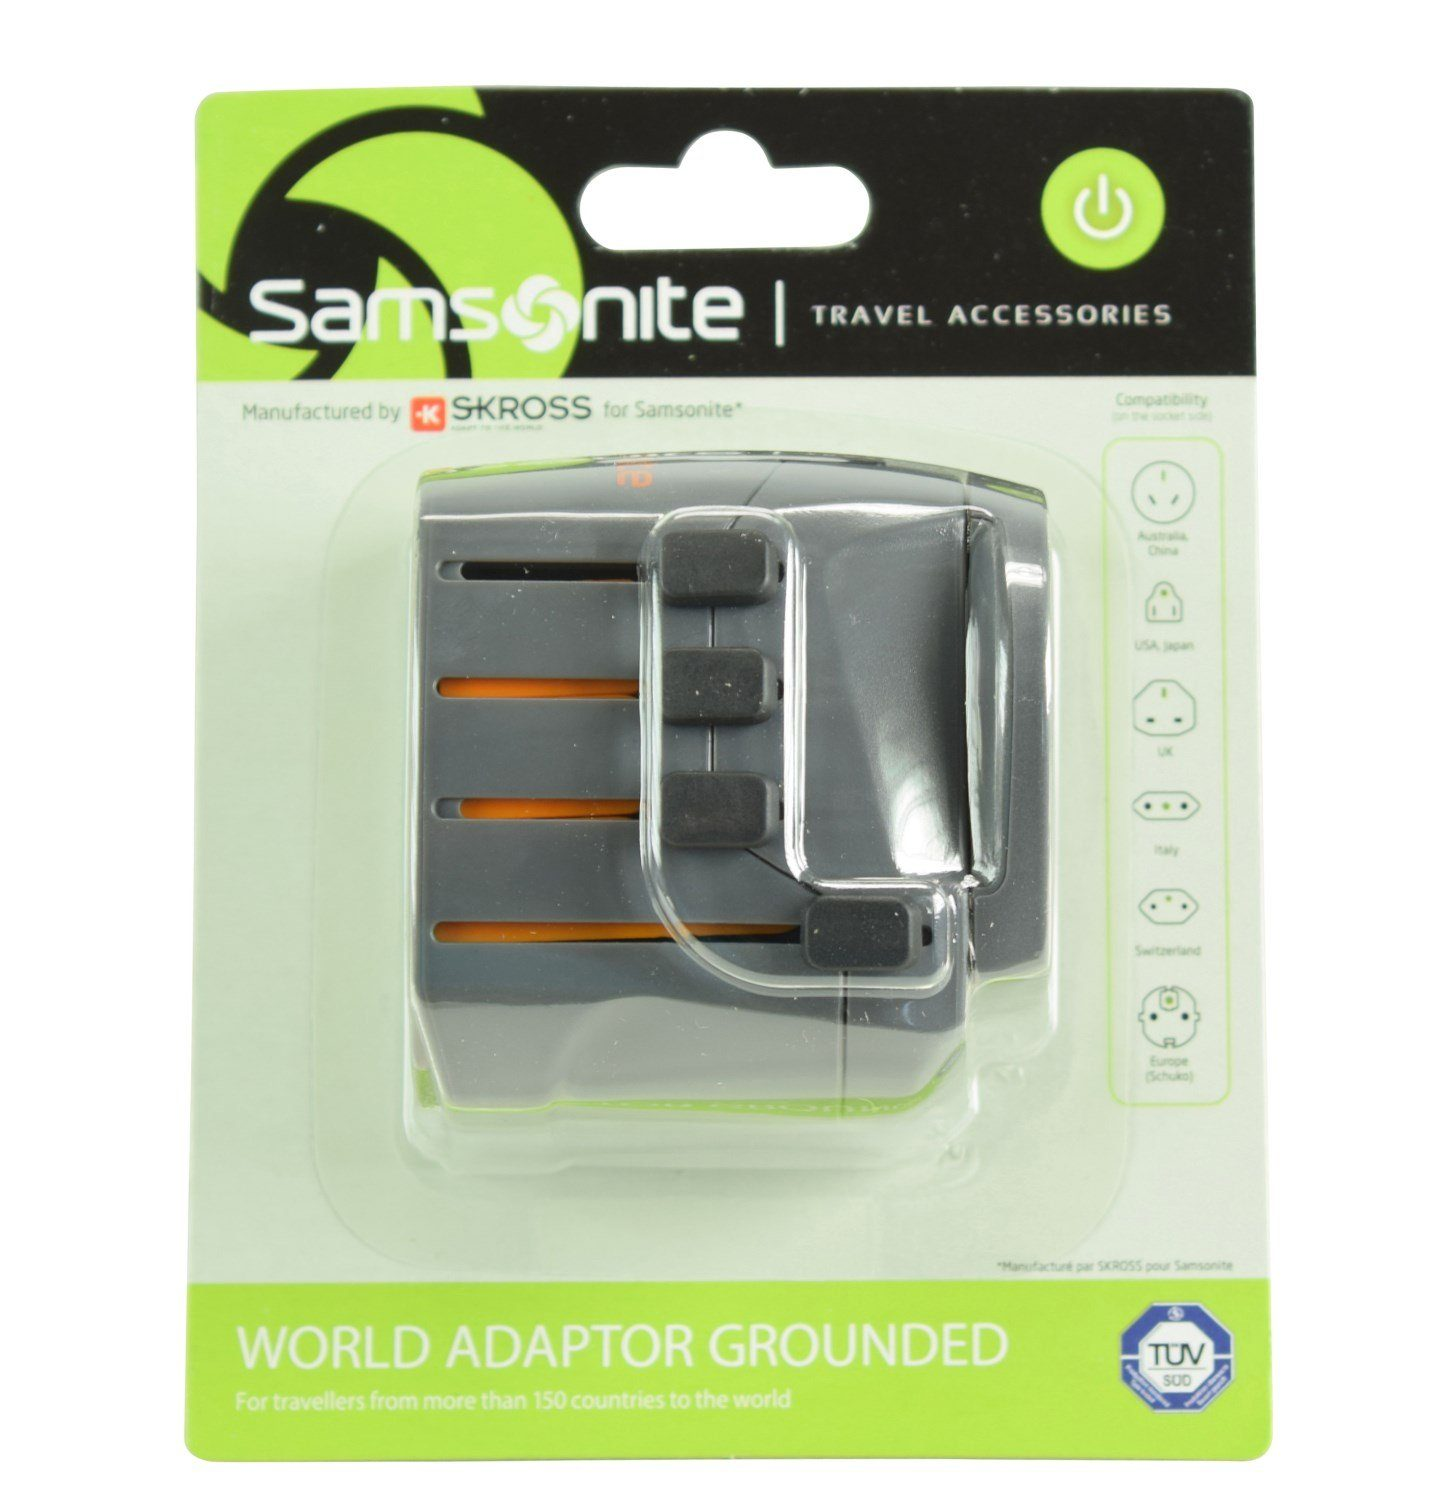 Samsonite Travel Accessories World Adapter II